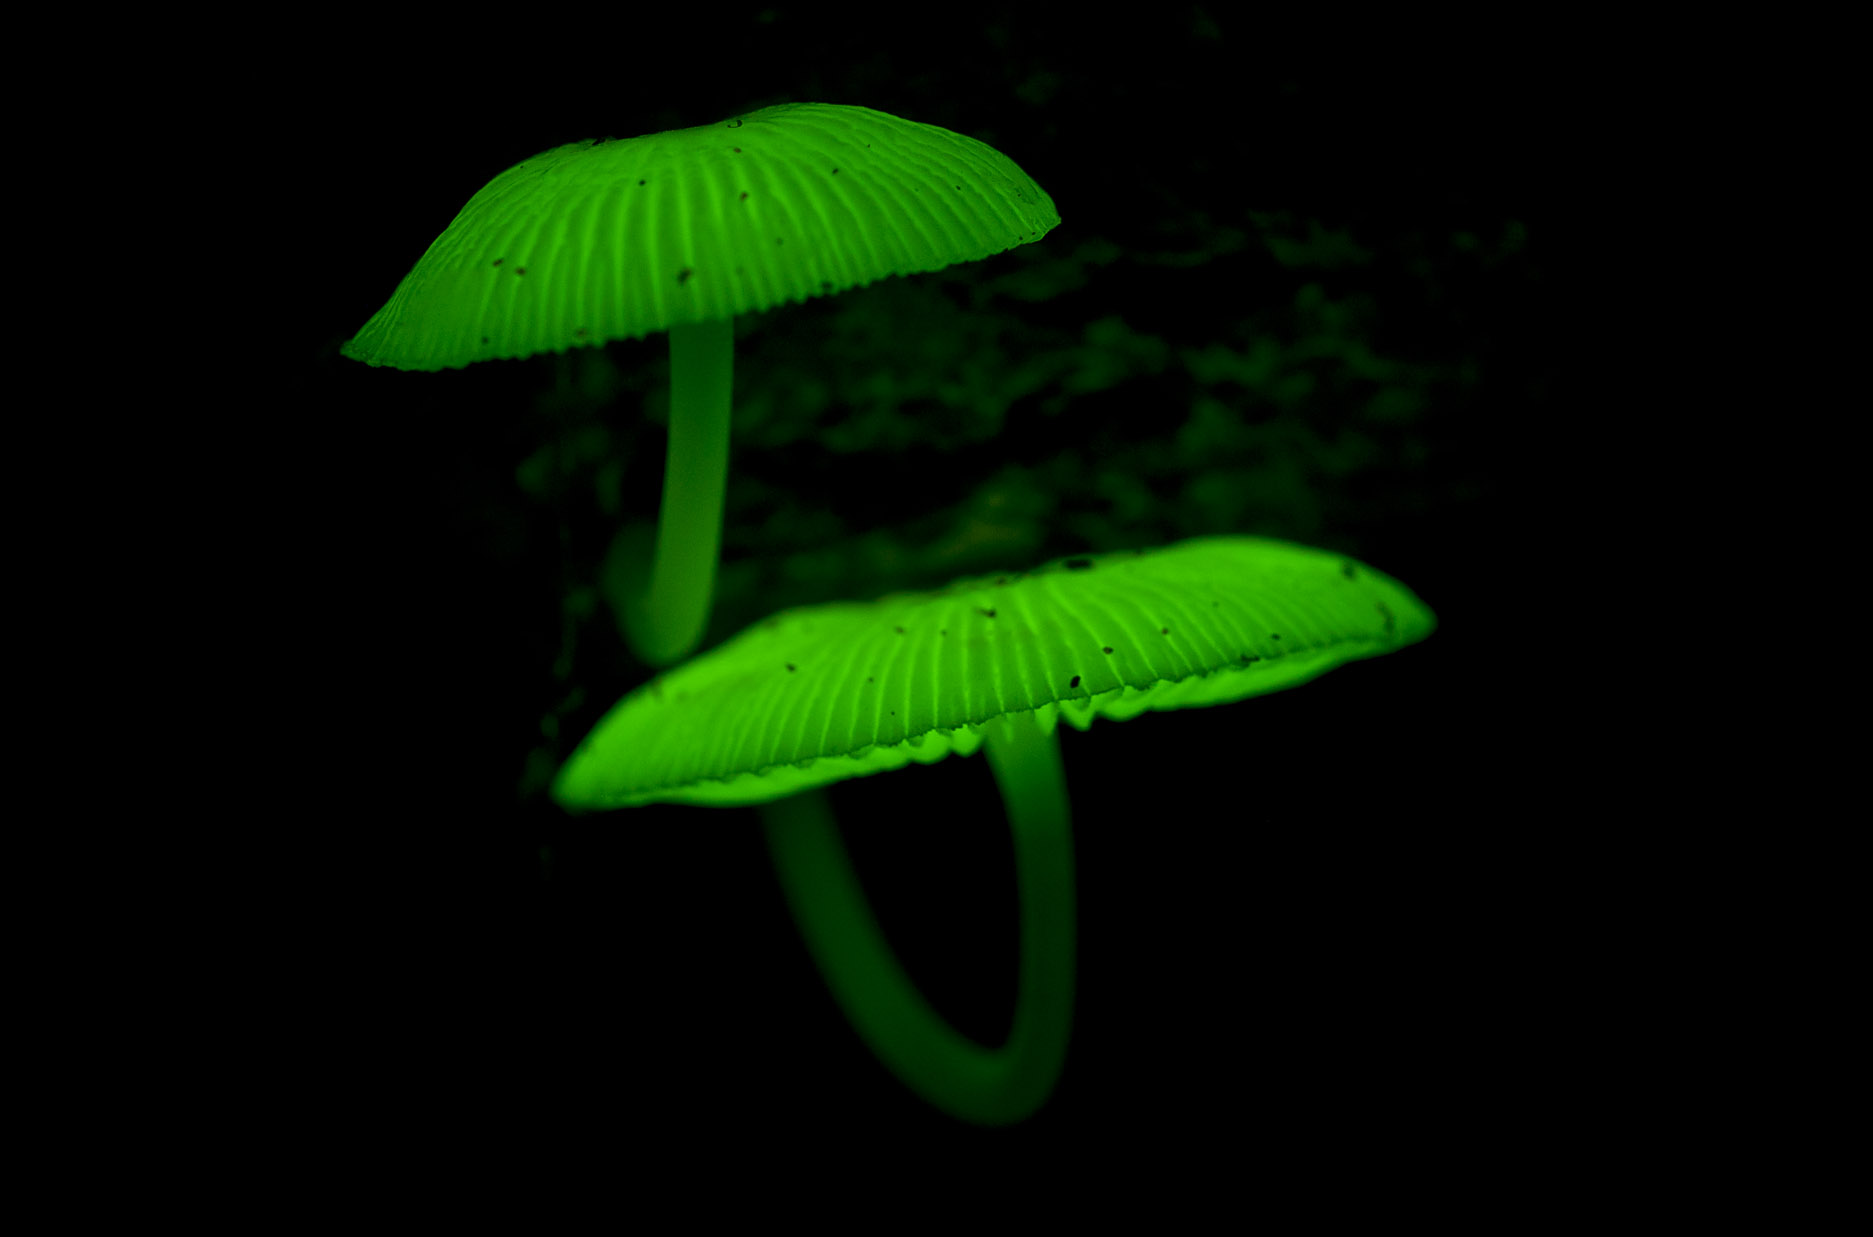 luminous_fungus_20120411_Mount_Pitt_Norfolk_I_NP_1.jpg